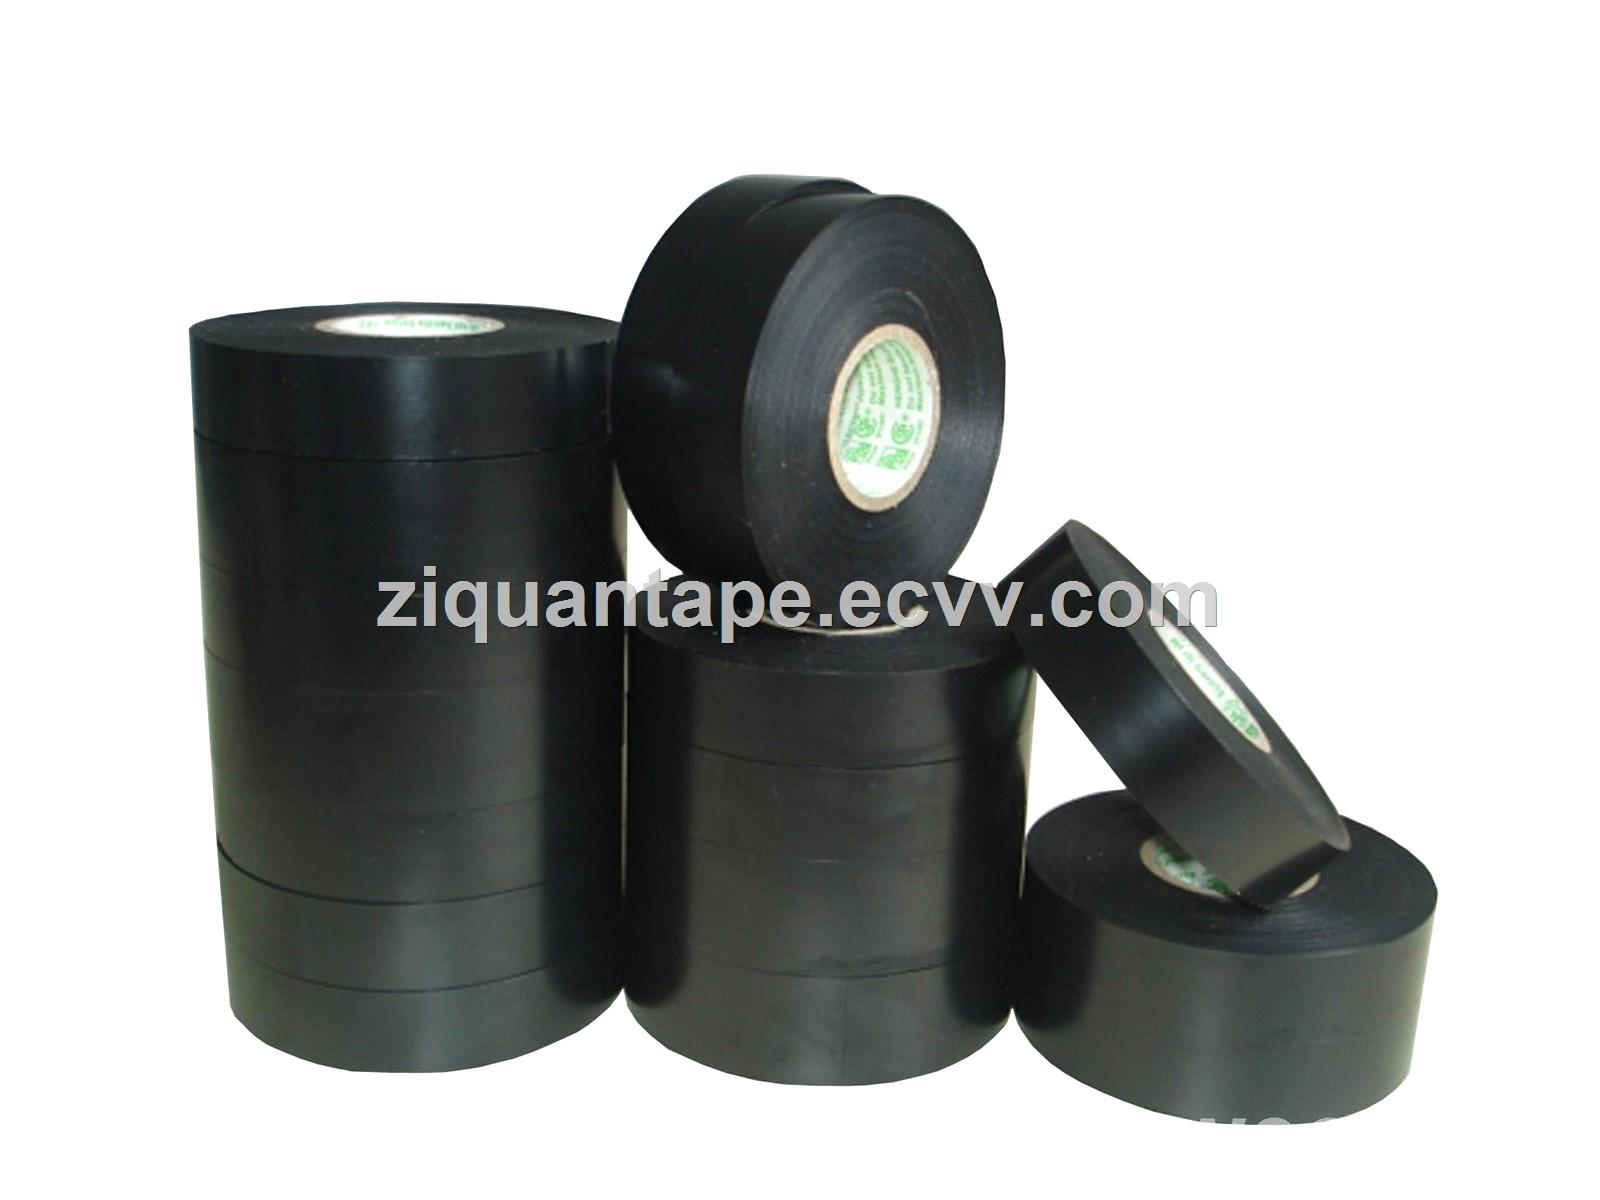 Wonder Pvc Pipe Wrapping Tapepvc Black Tape Protection Pipes For Electrical Wiring Metal And Pe Compare Evaluate China Manufacturer With Main Products Warning Insulation Adhesive Packing Masking Wire